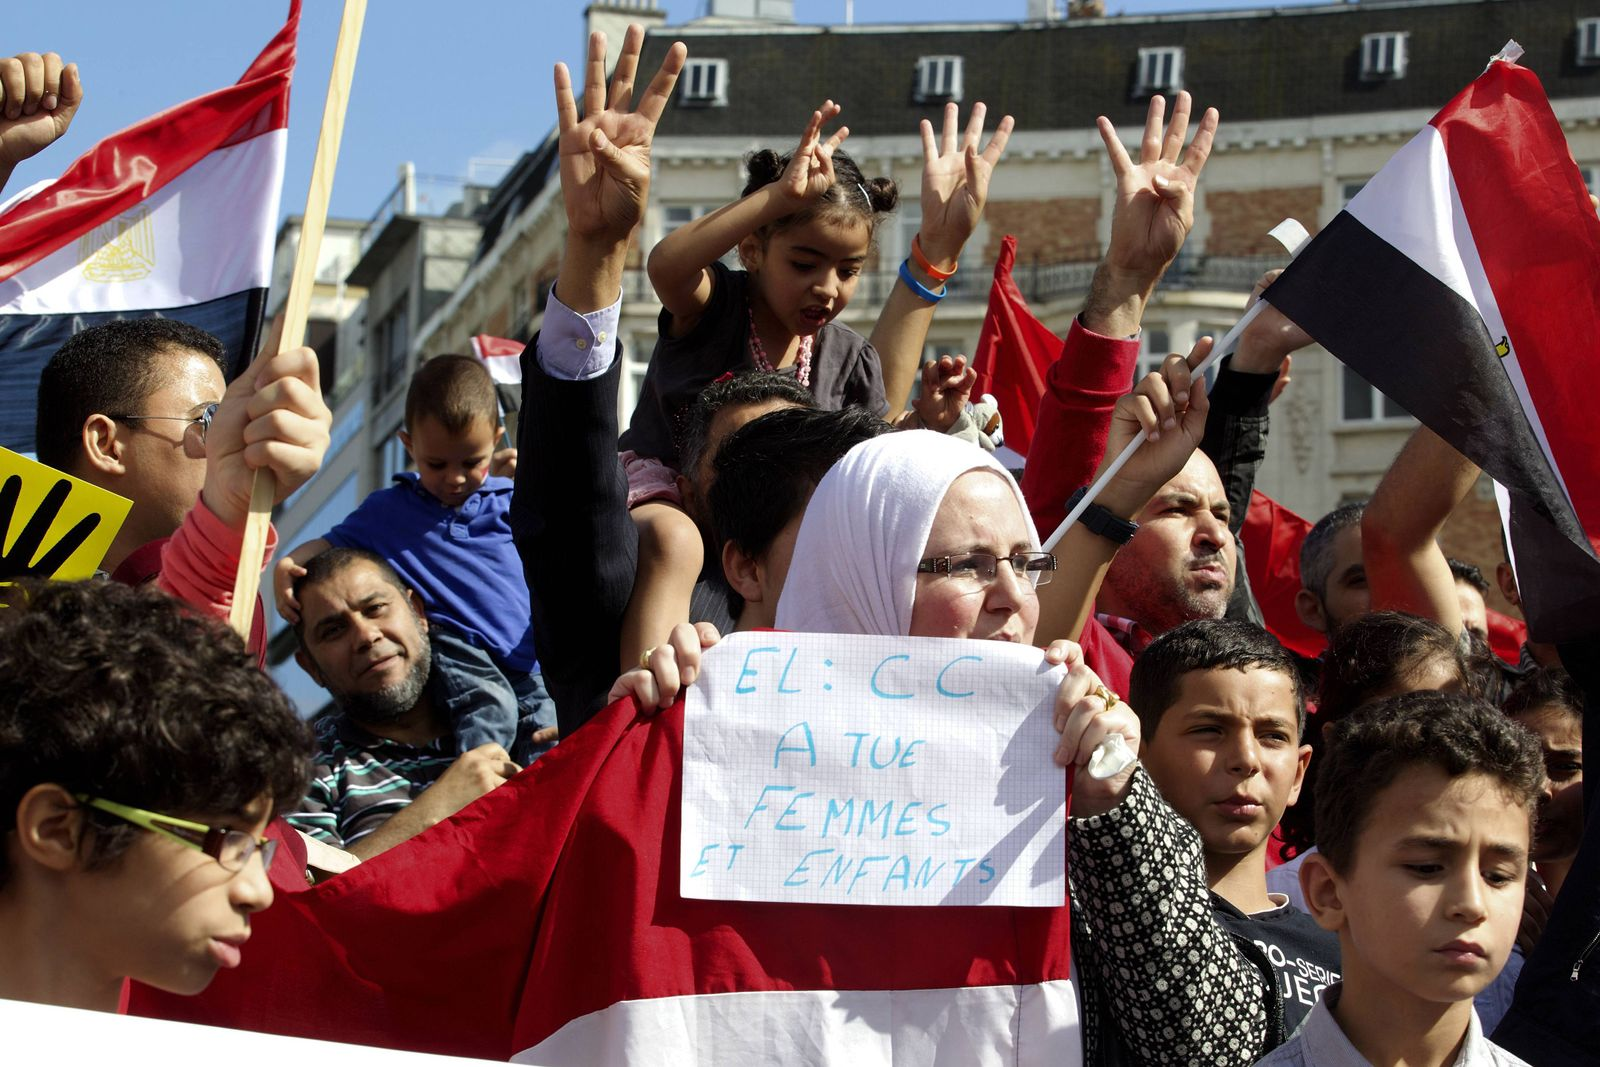 BELGIUM-EGYPT-UNREST-POLITICS-DEMO